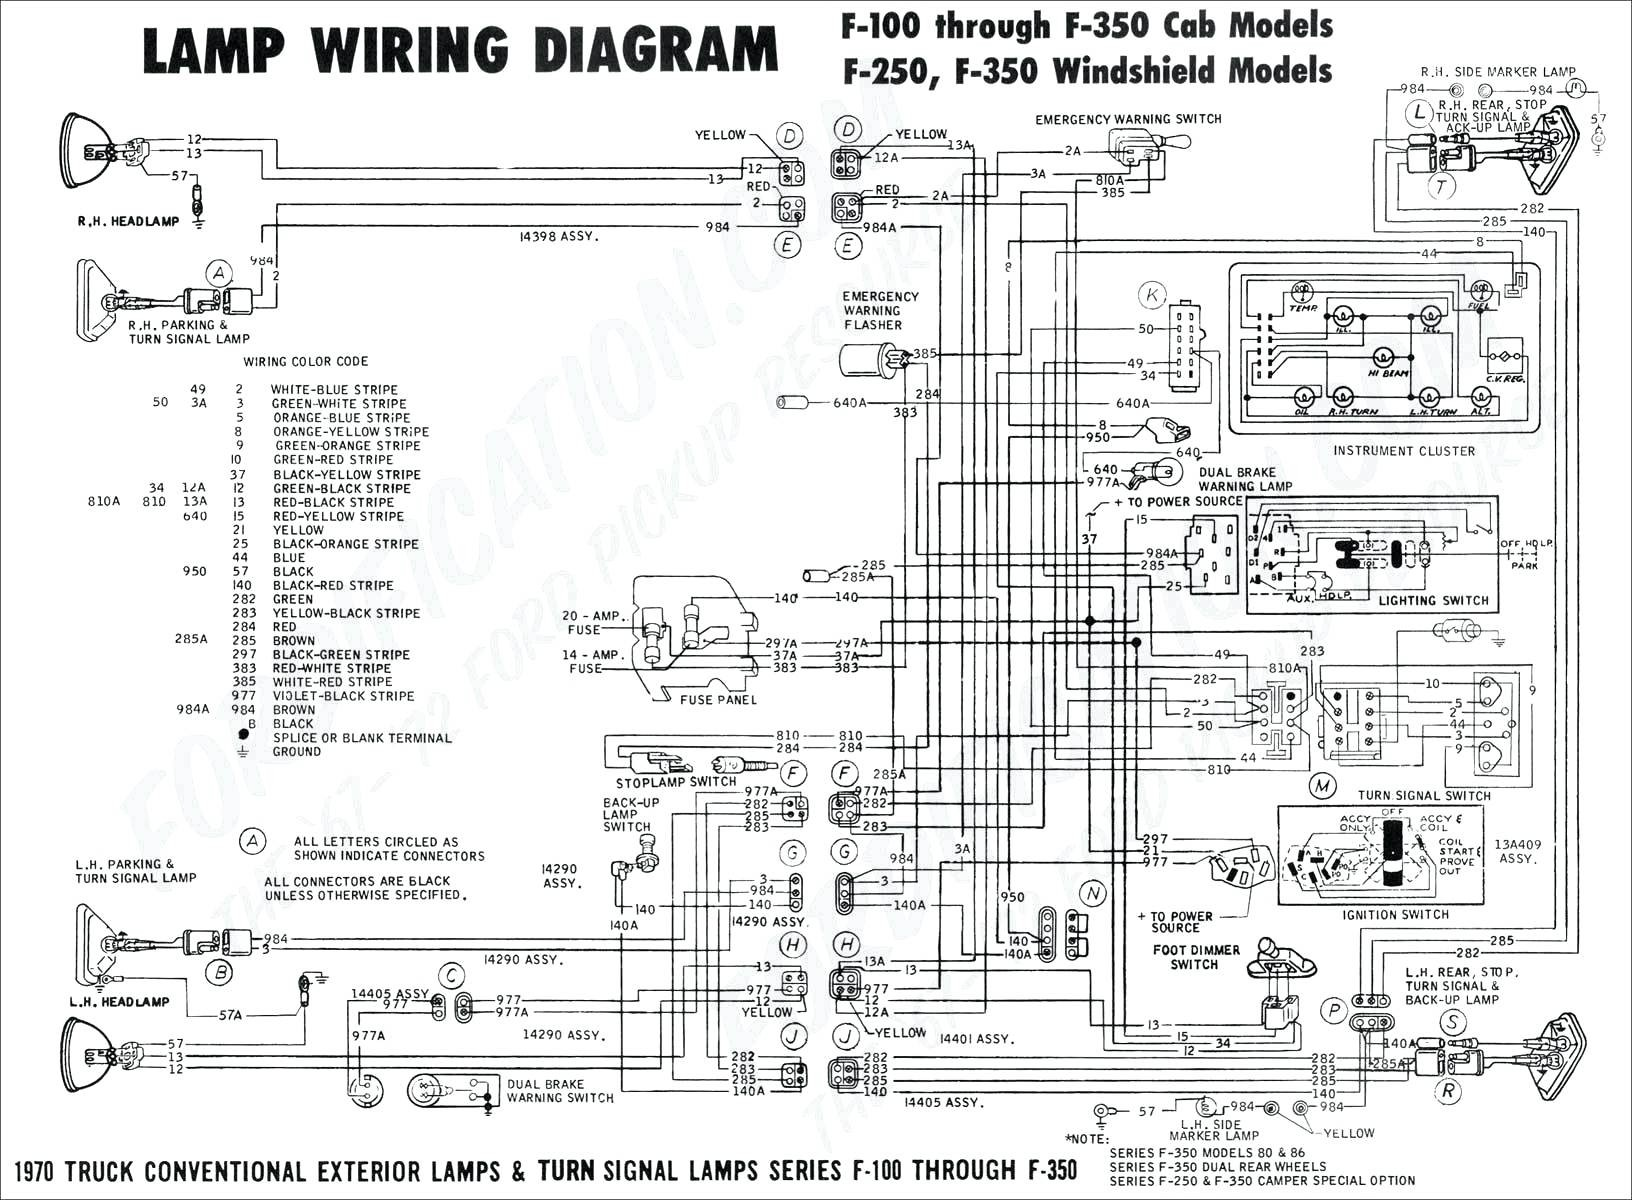 2000 F250 Trailer Wiring Diagram Collection 1986 Ford F350 Wiring Diagram  Fresh 1999 Trailer Inspirational